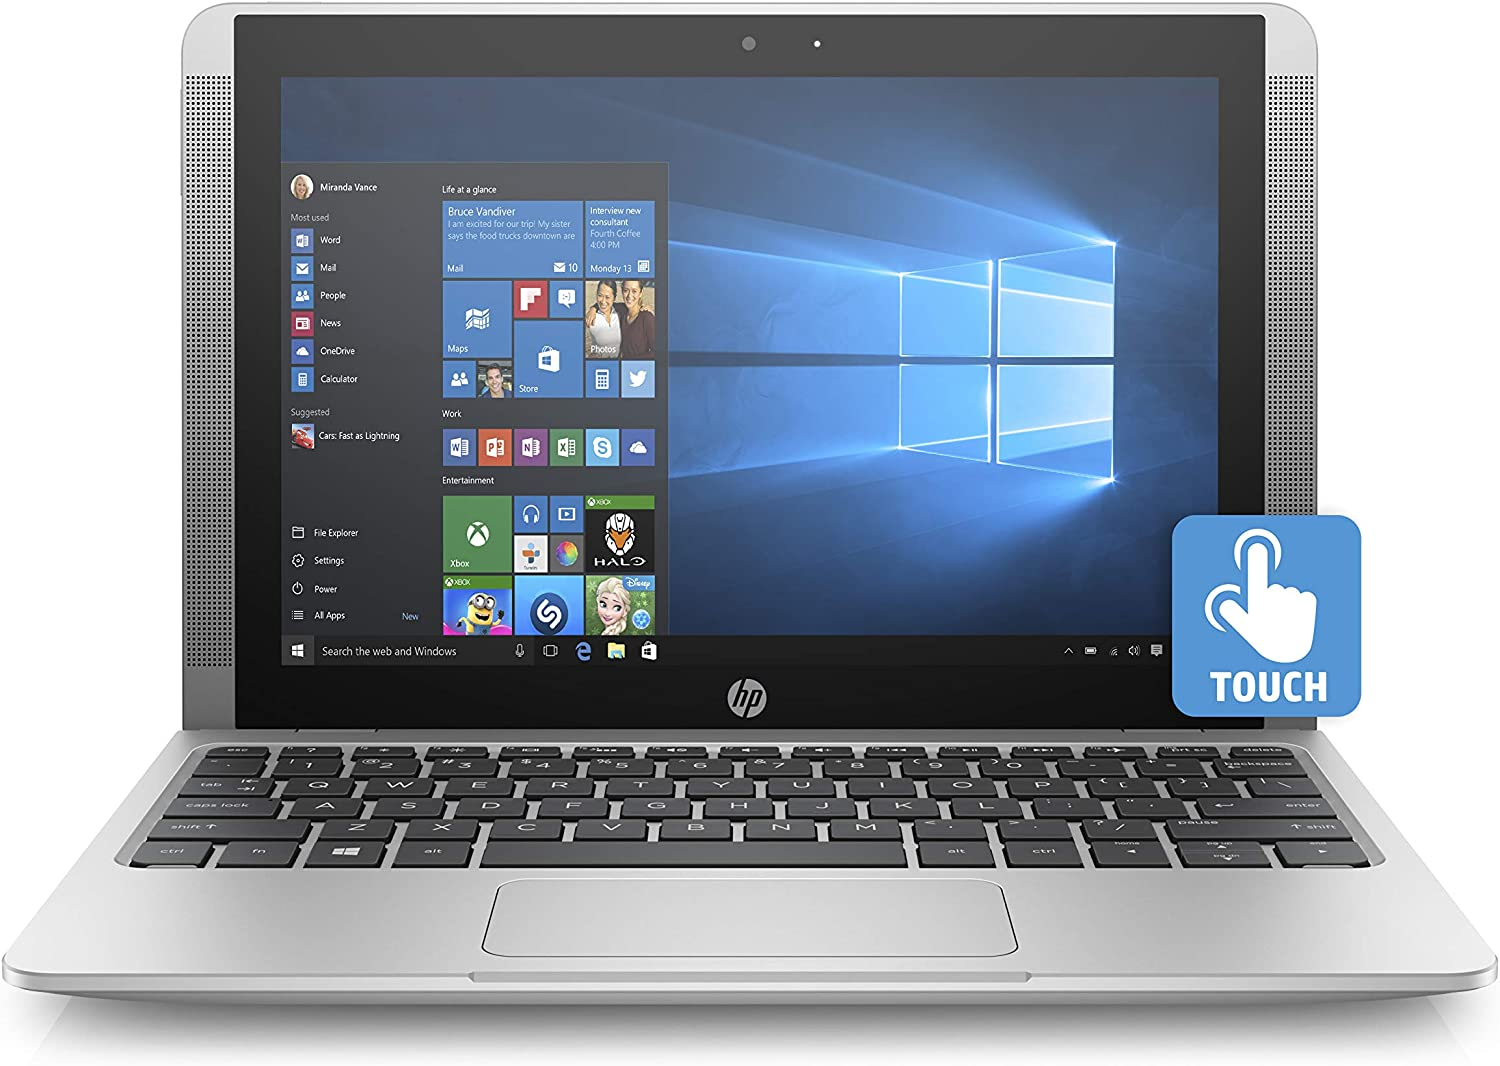 HP 10-p018wm Intel x5-Z8350 Quad Core 4GB 64GB 2-in-1 10.1 inches 2-in-1 Touch Laptop (Renewed)